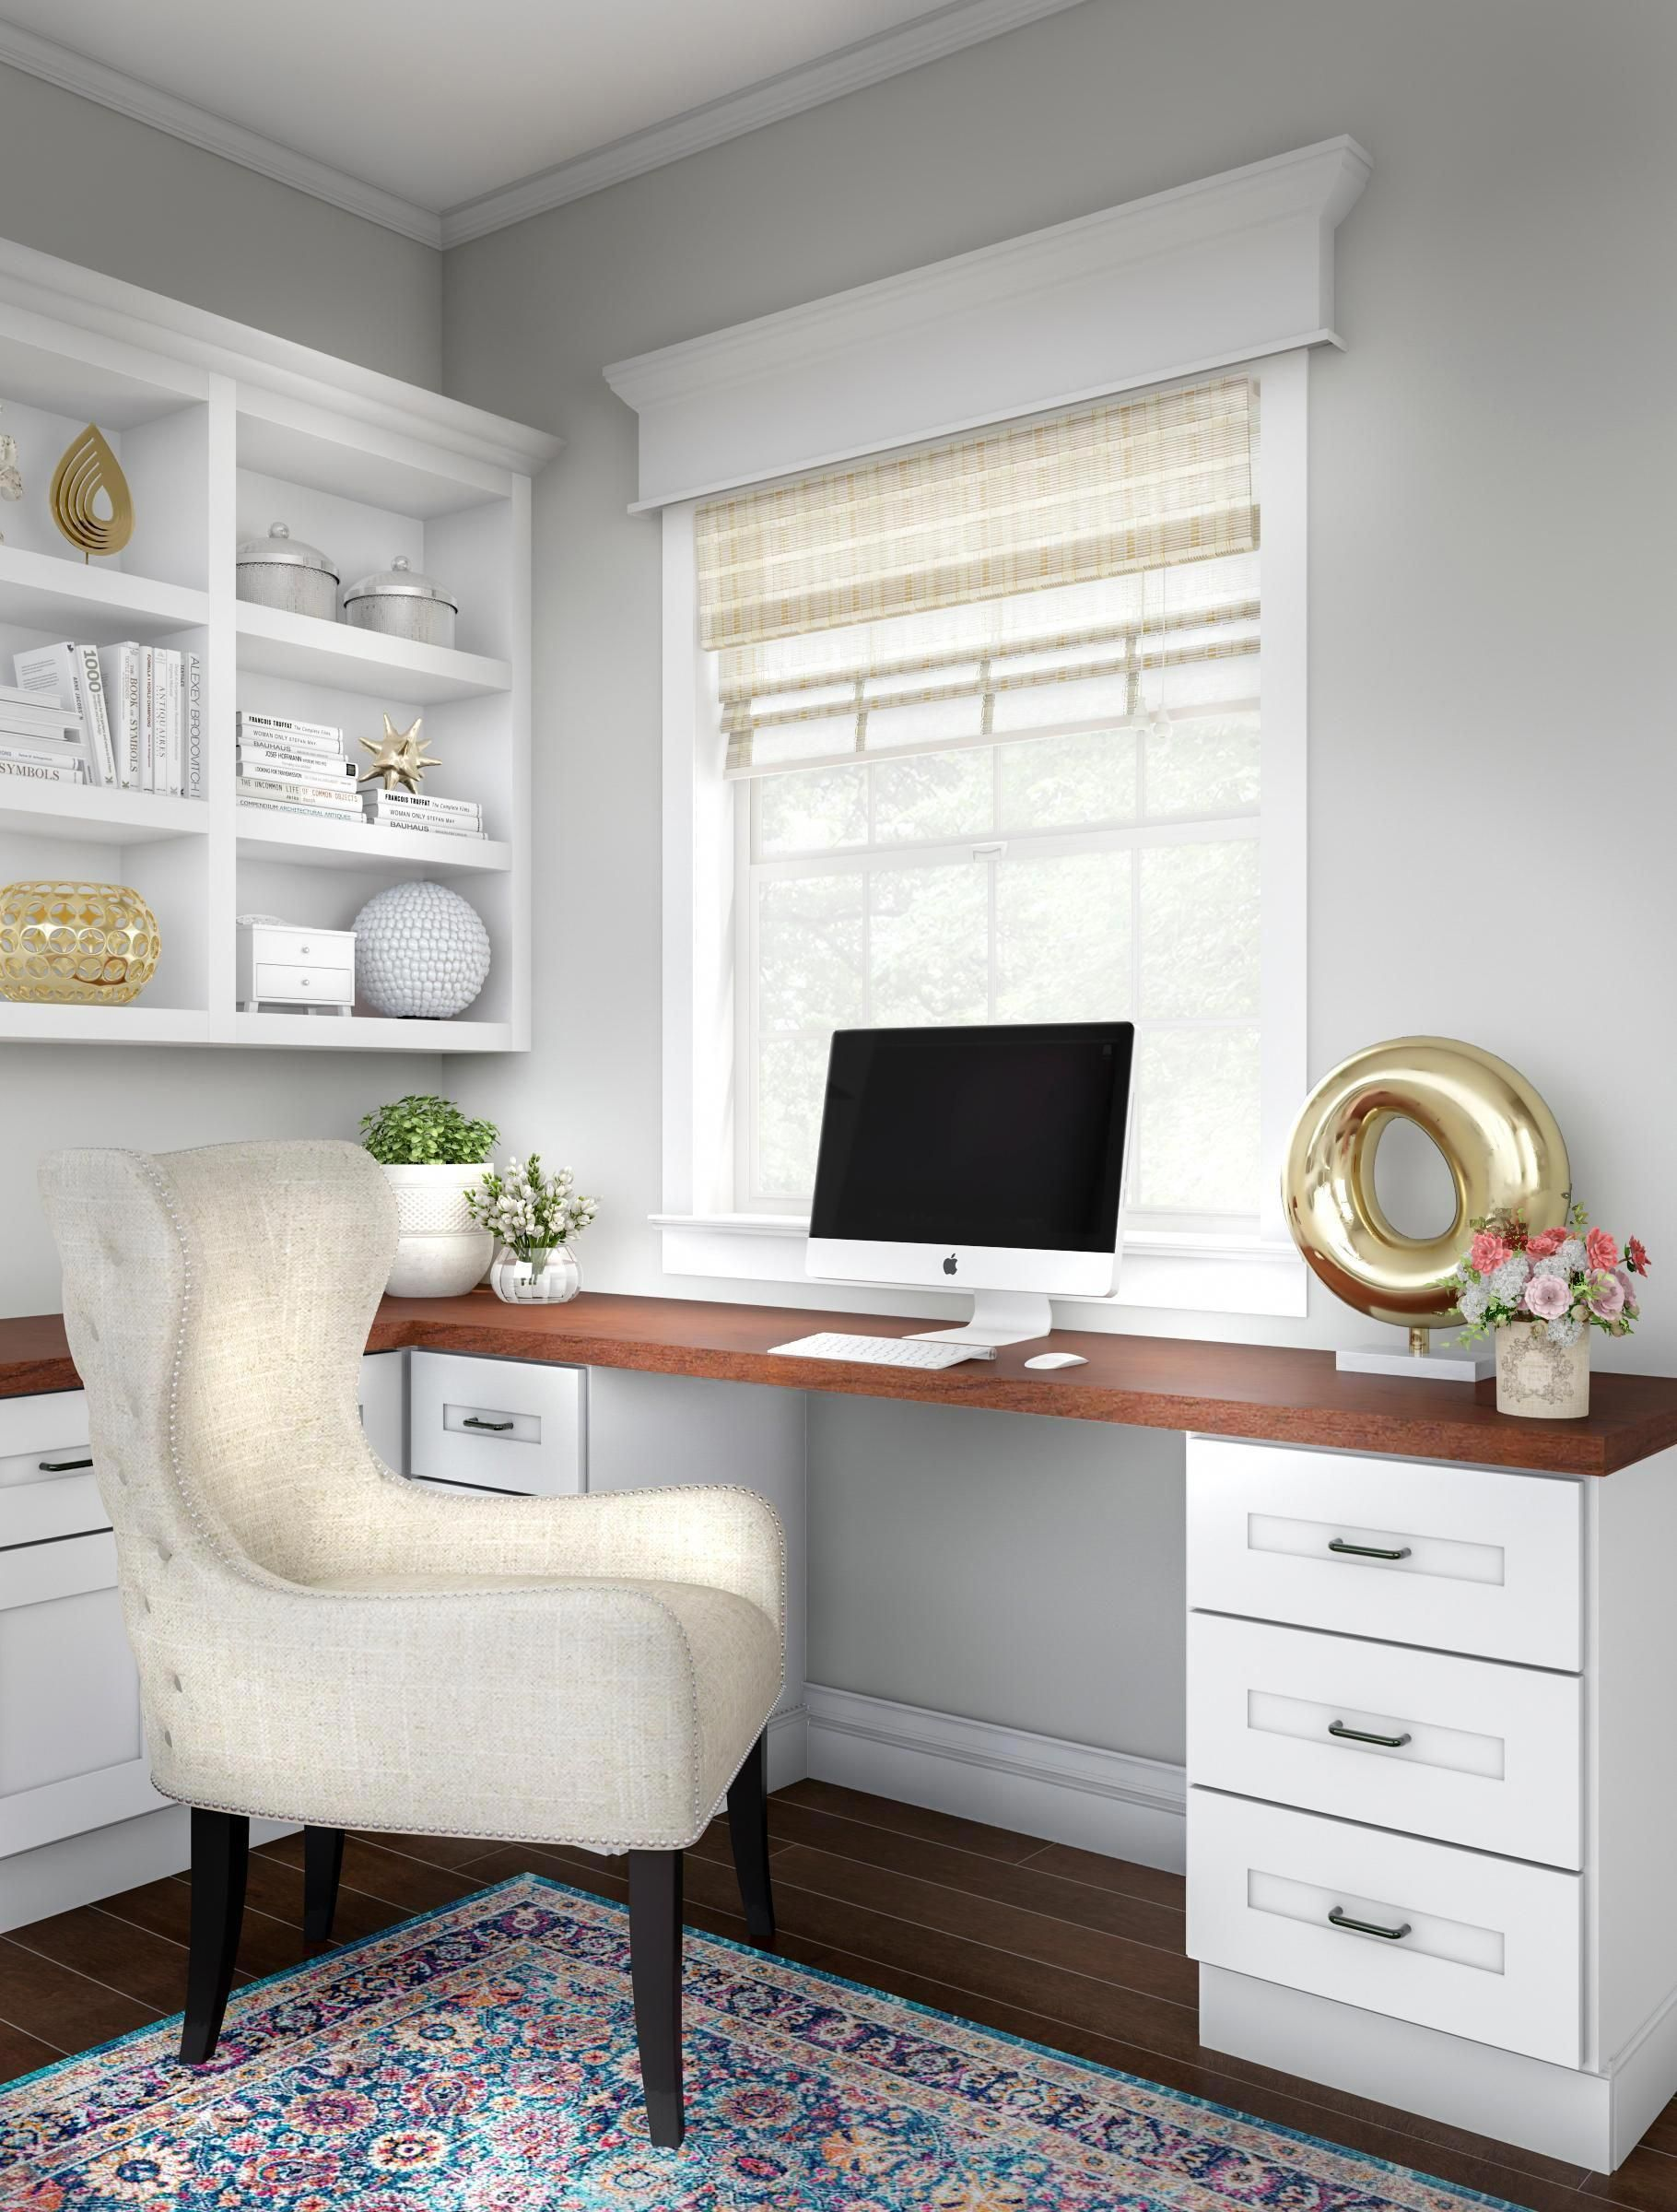 Touch Your Home Office With Golden Accents Start With Comfortable Elegance An L Shaped Desk With Home Office Design Home Office Furniture Home Office Decor